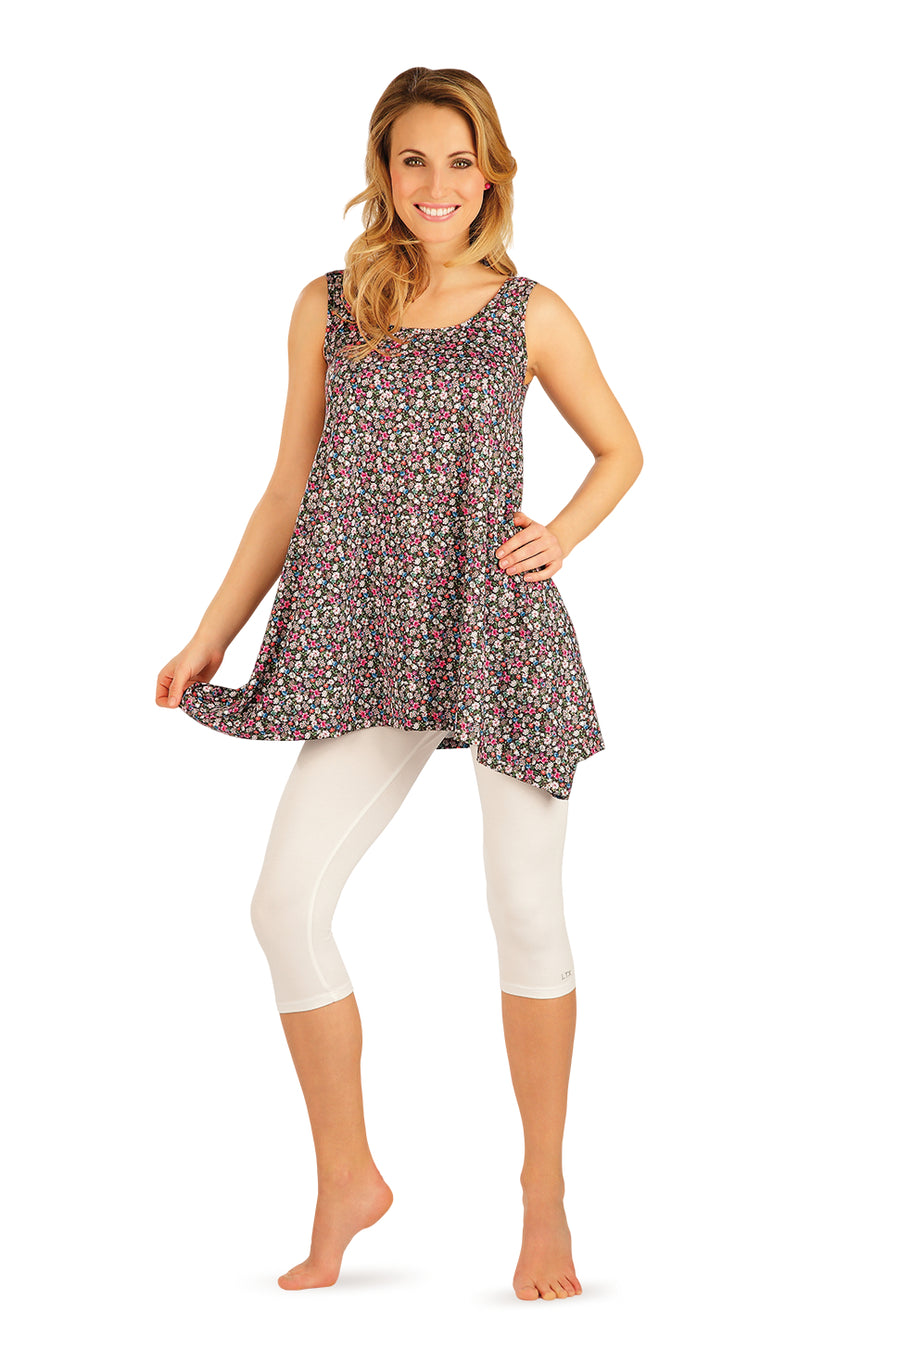 Sleeveless Floral Print Tunic - onelike